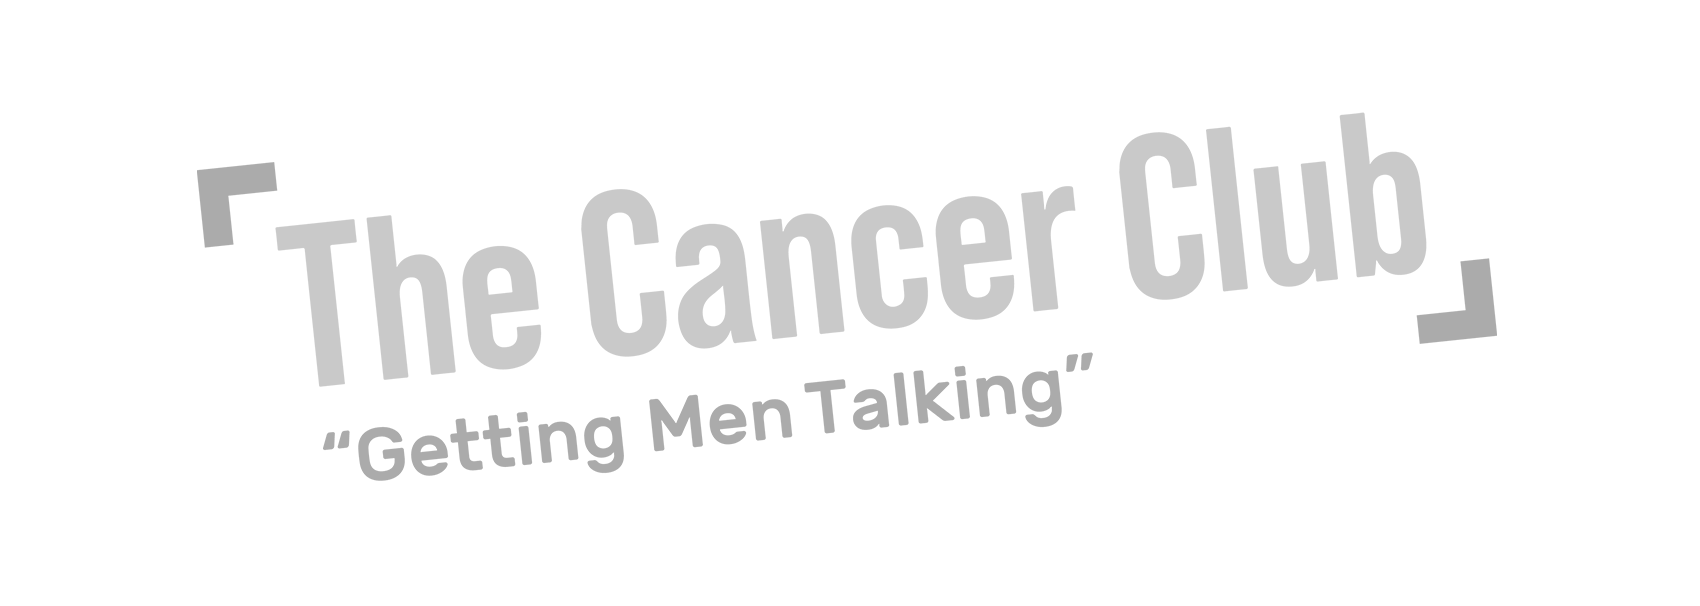 TheCancerClub.co.uk